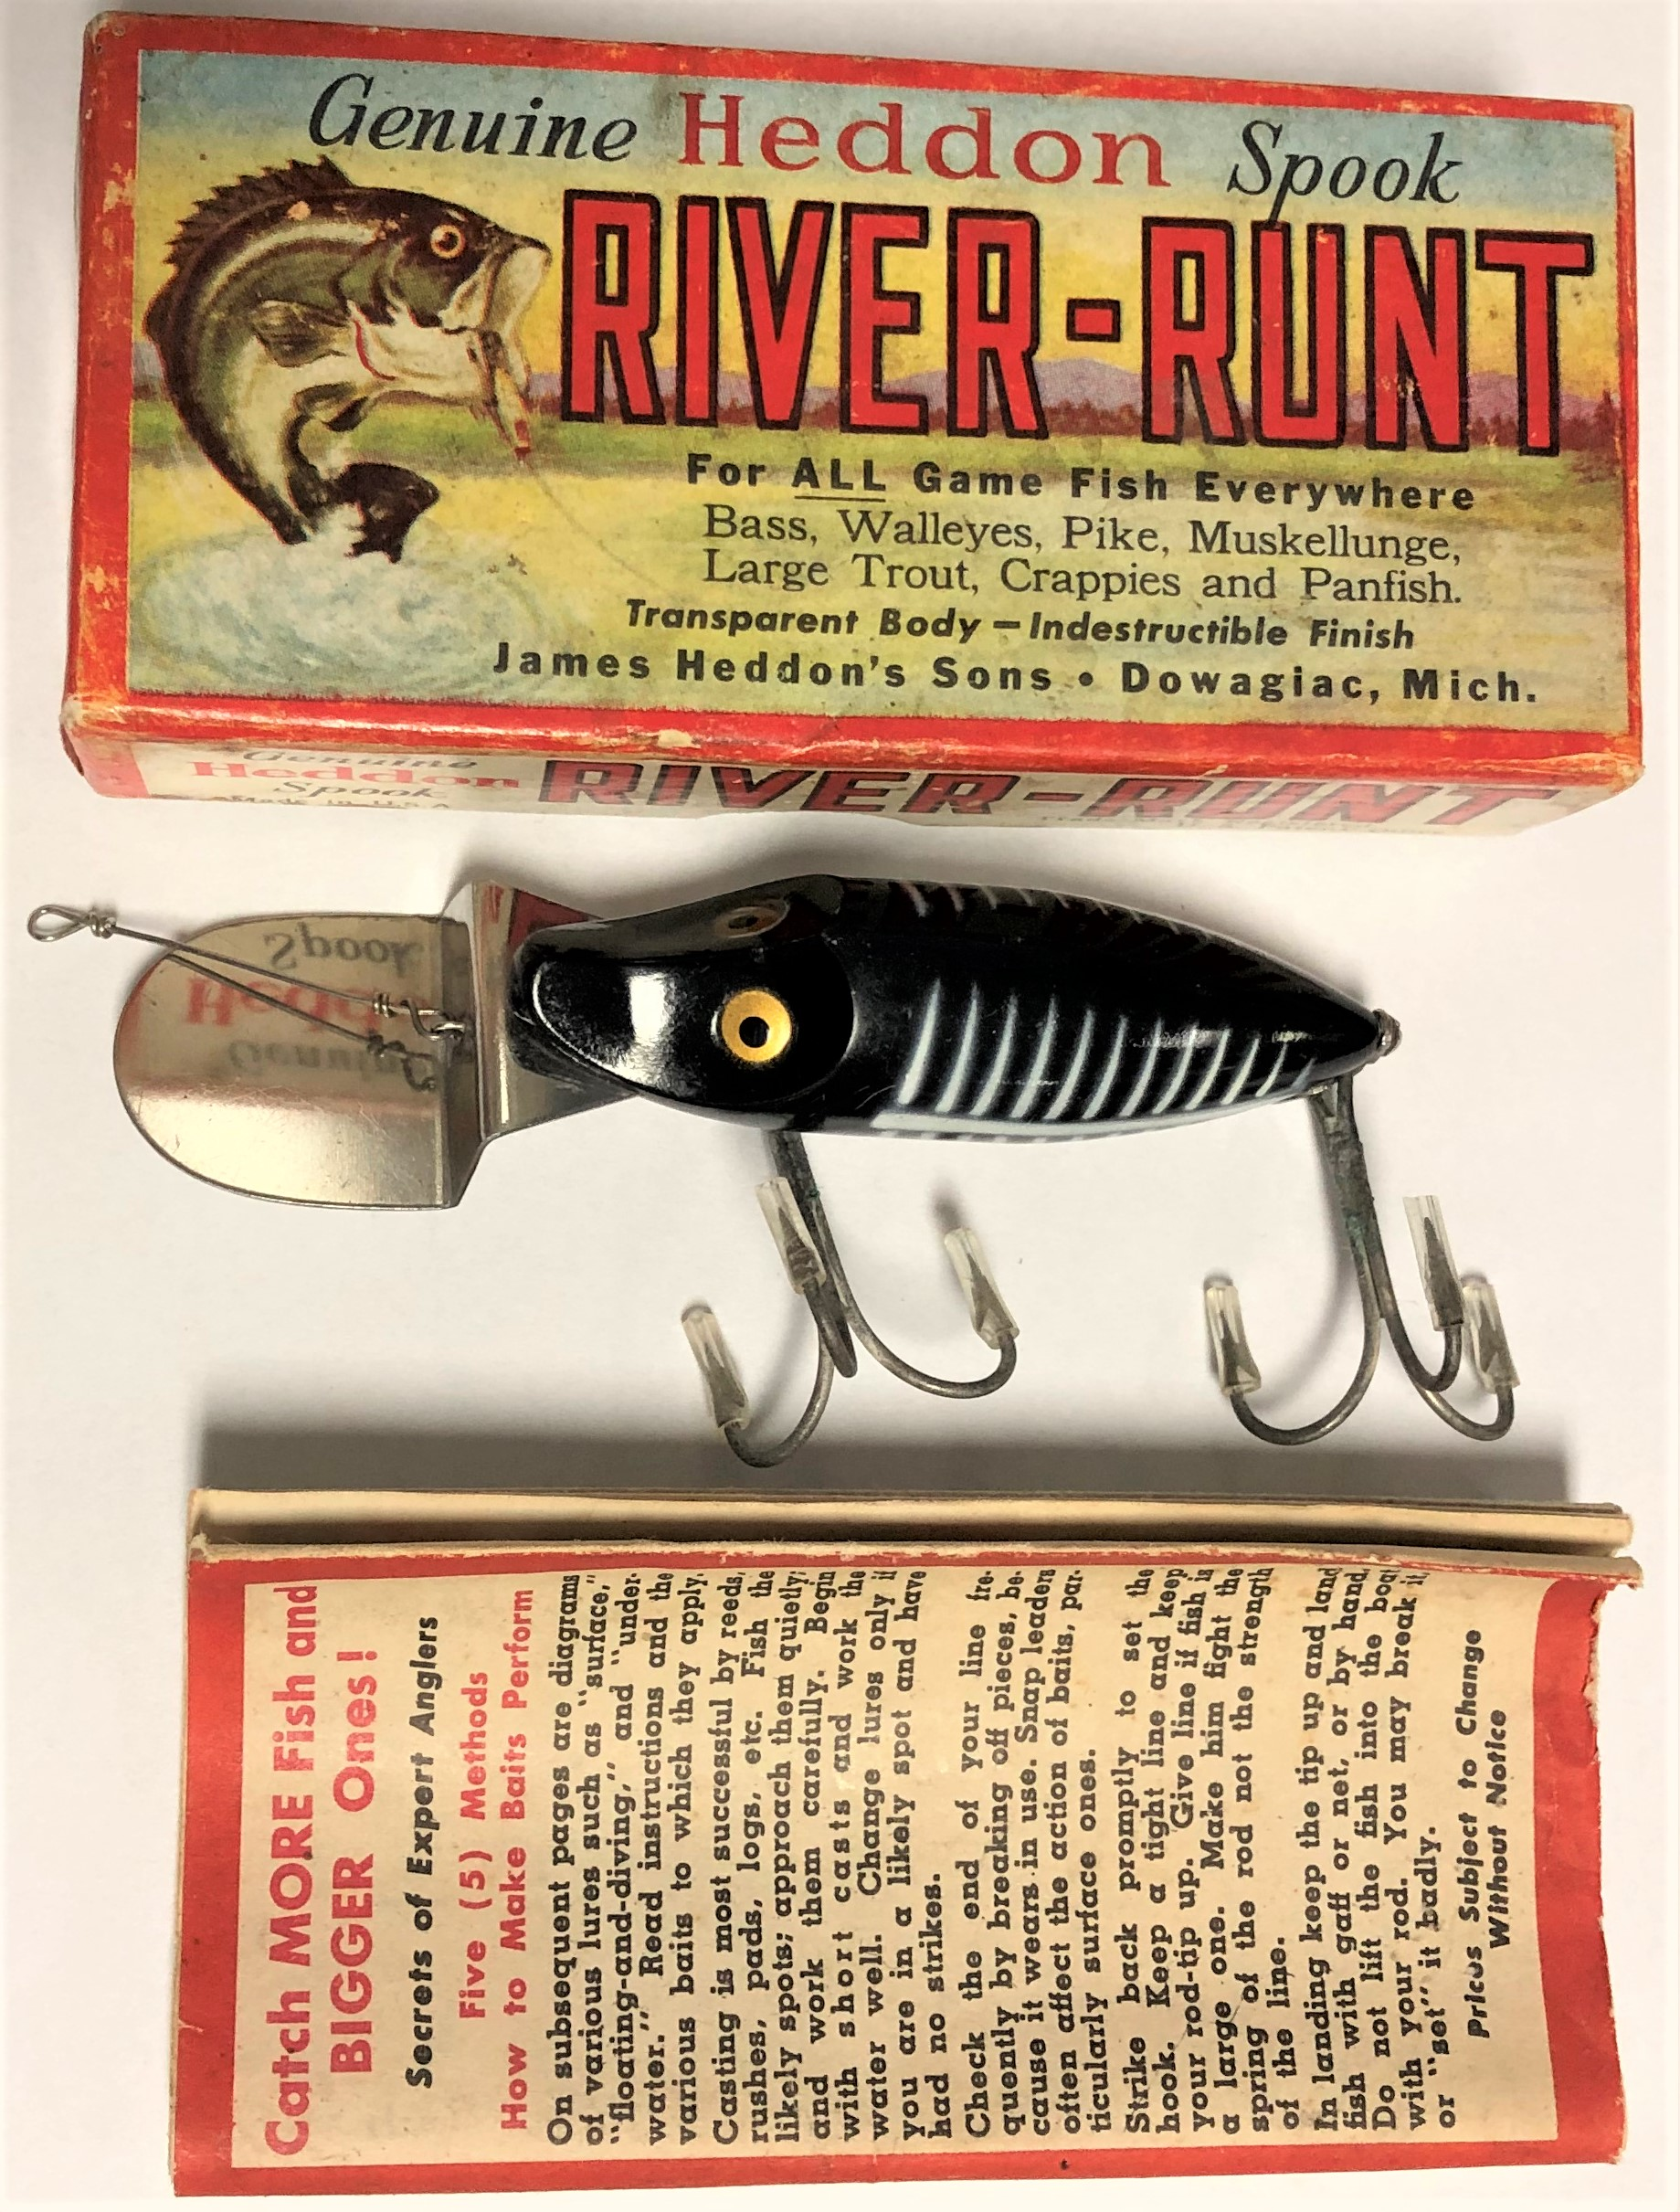 Get hooked on collecting vintage fishing lures – Jasper52